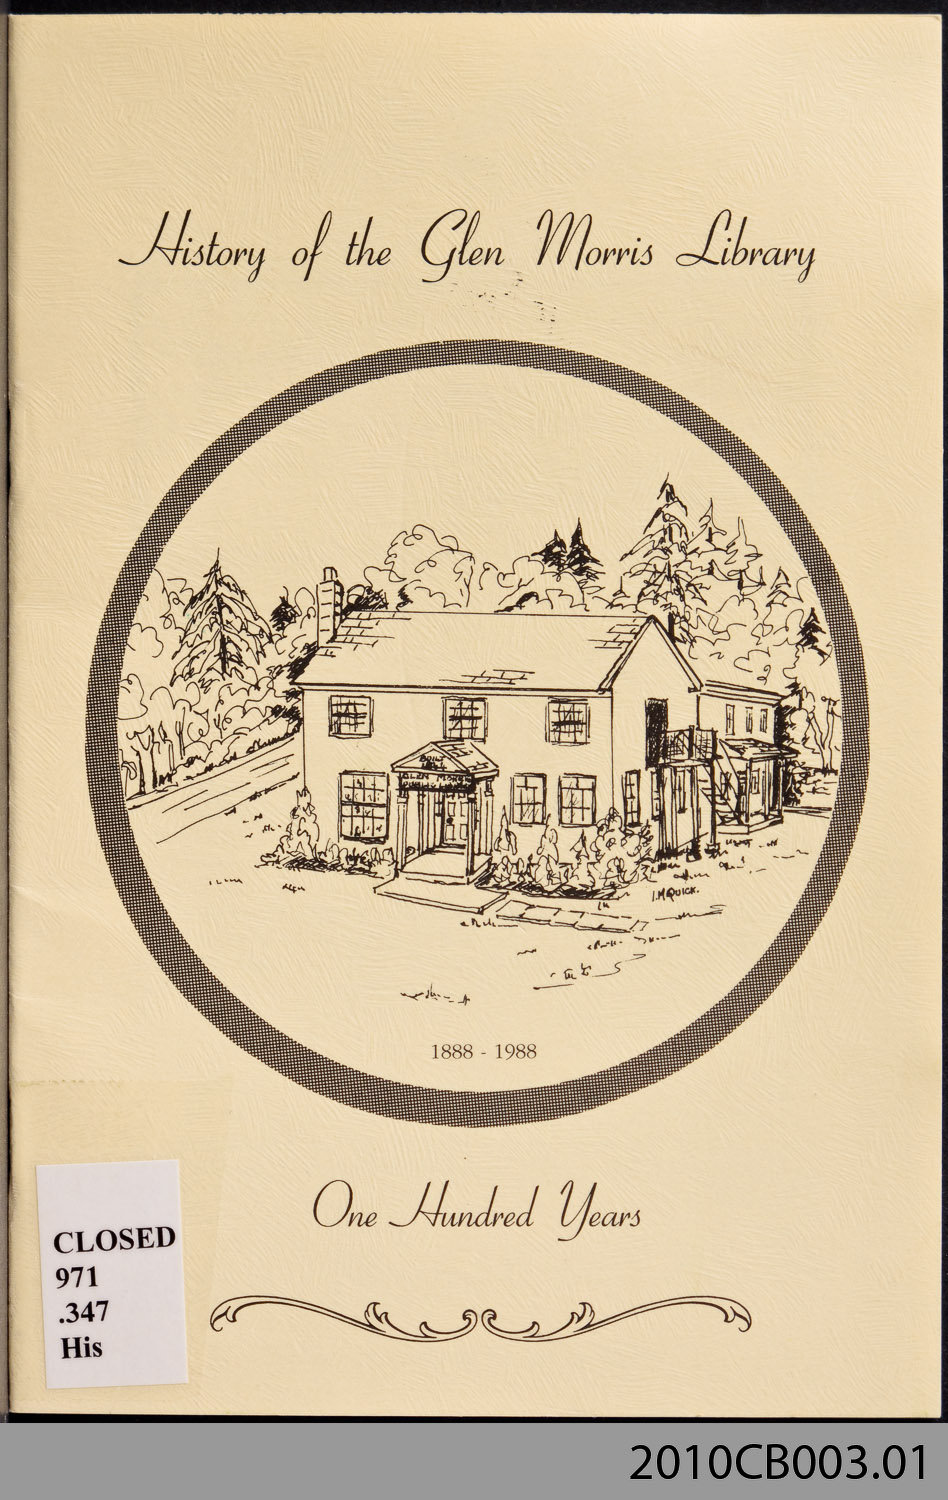 History of the Glen Morris Library: One Hundred Years